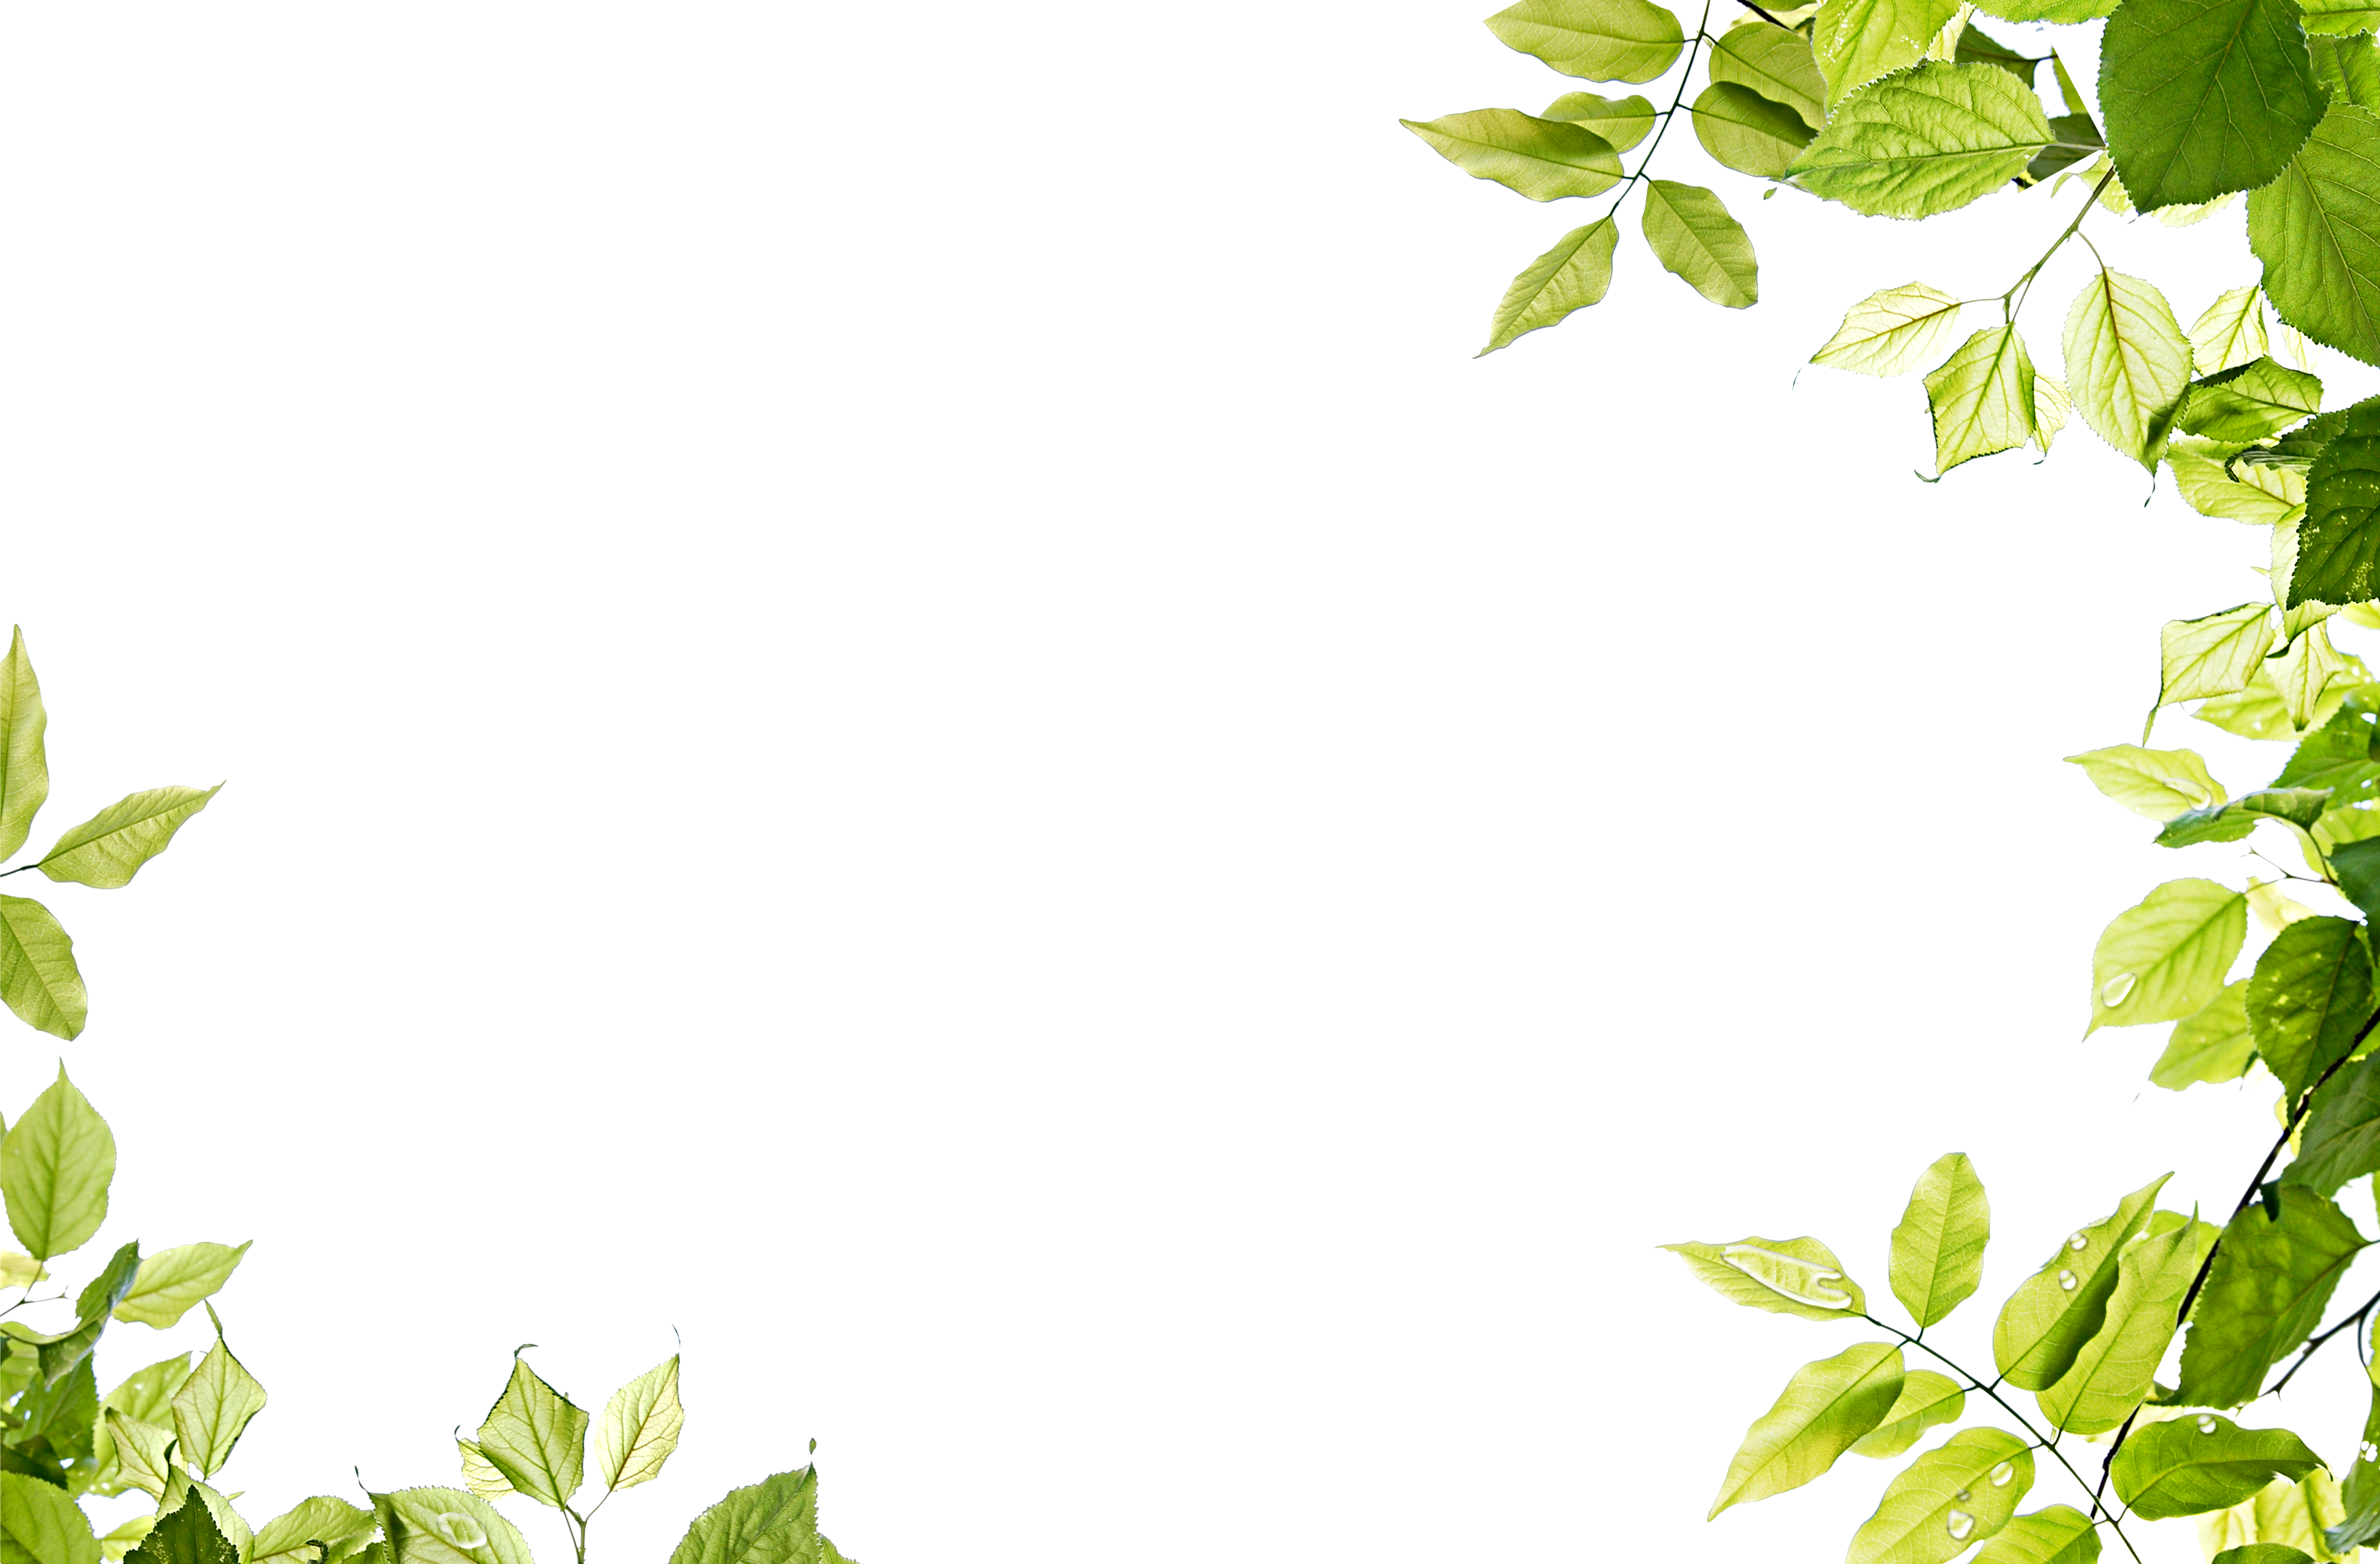 green leaves frame png image